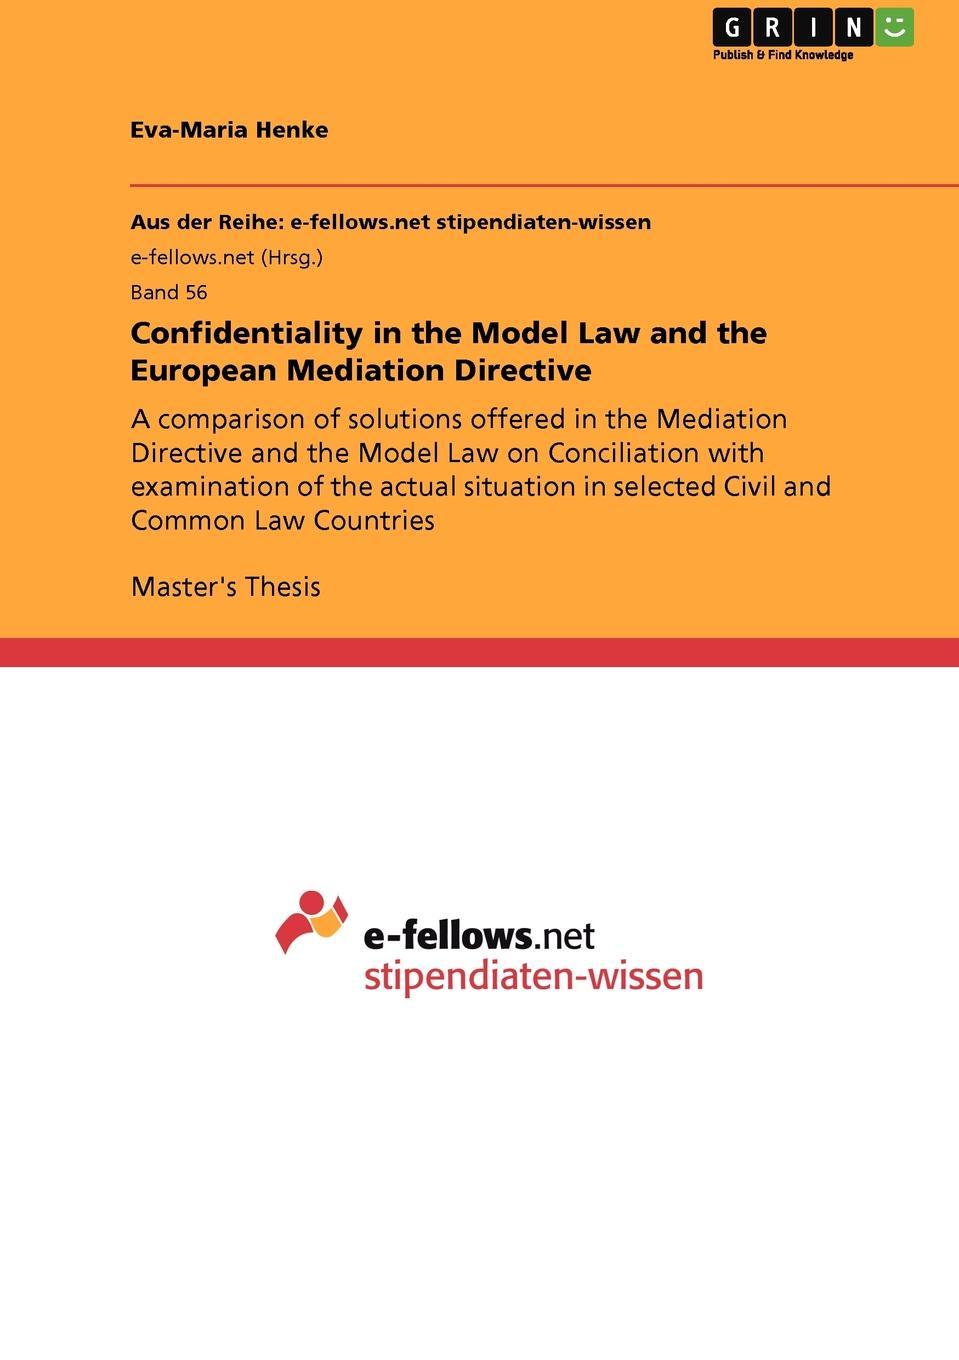 Eva-Maria Henke Confidentiality in the Model Law and the European Mediation Directive guanglei hong causality in a social world moderation mediation and spill over